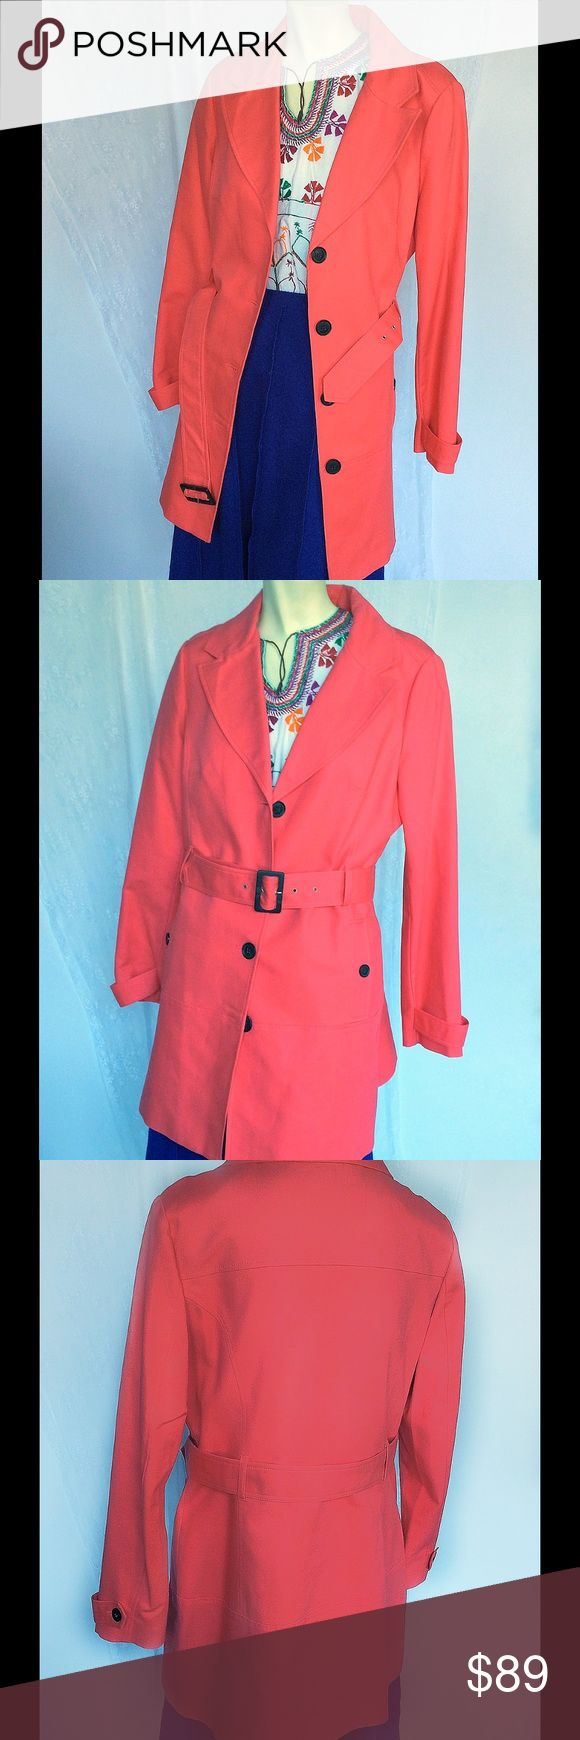 NEW MANGO MNG Fushia hot pink gabardine trench 10 Brand new, no tags, from Mango, Spain. Size is 44 EUR, US 10 approx. bundle to save! Mango Jackets & Coats Trench Coats